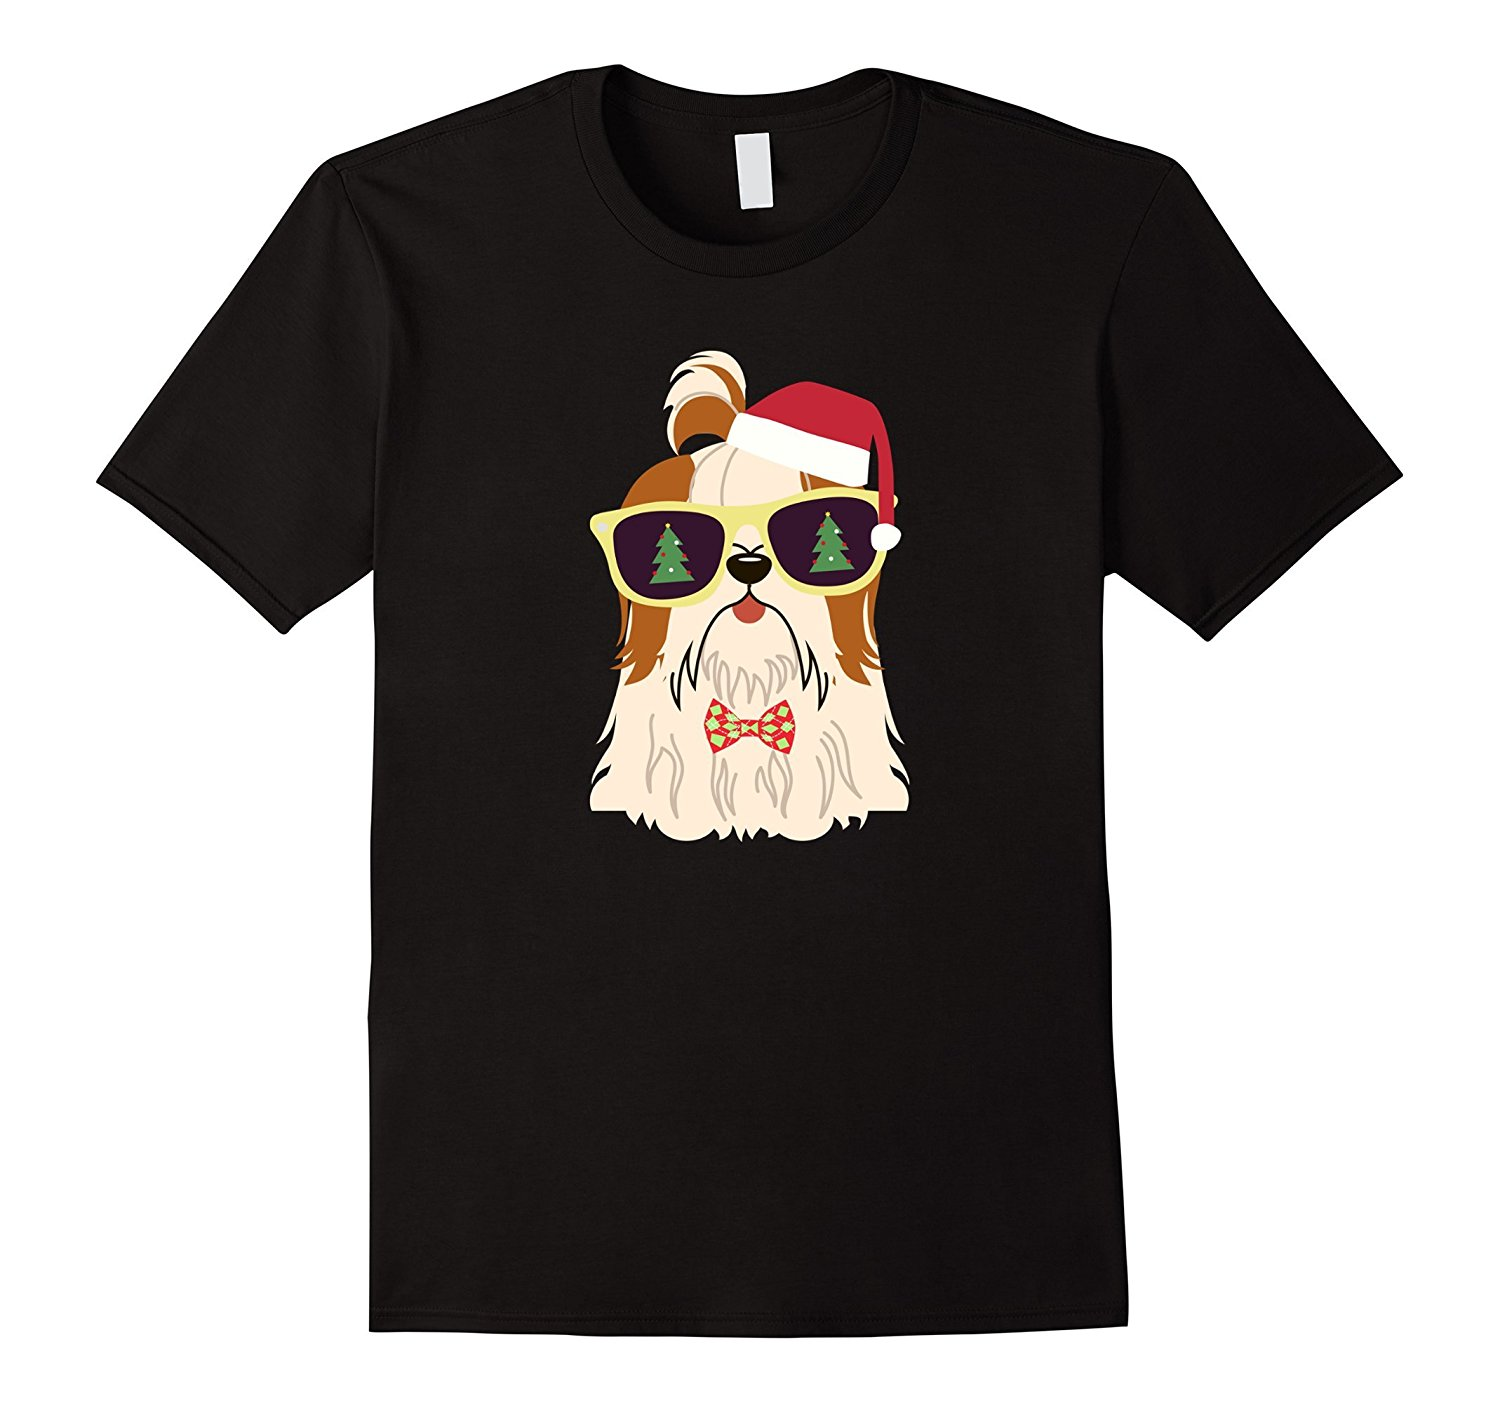 Yorkie Dog Shirt for Christmas for Yorkshire Terrier Lovers Printed Summer Style Tees Male Harajuku Top Fitness Brand Clothing